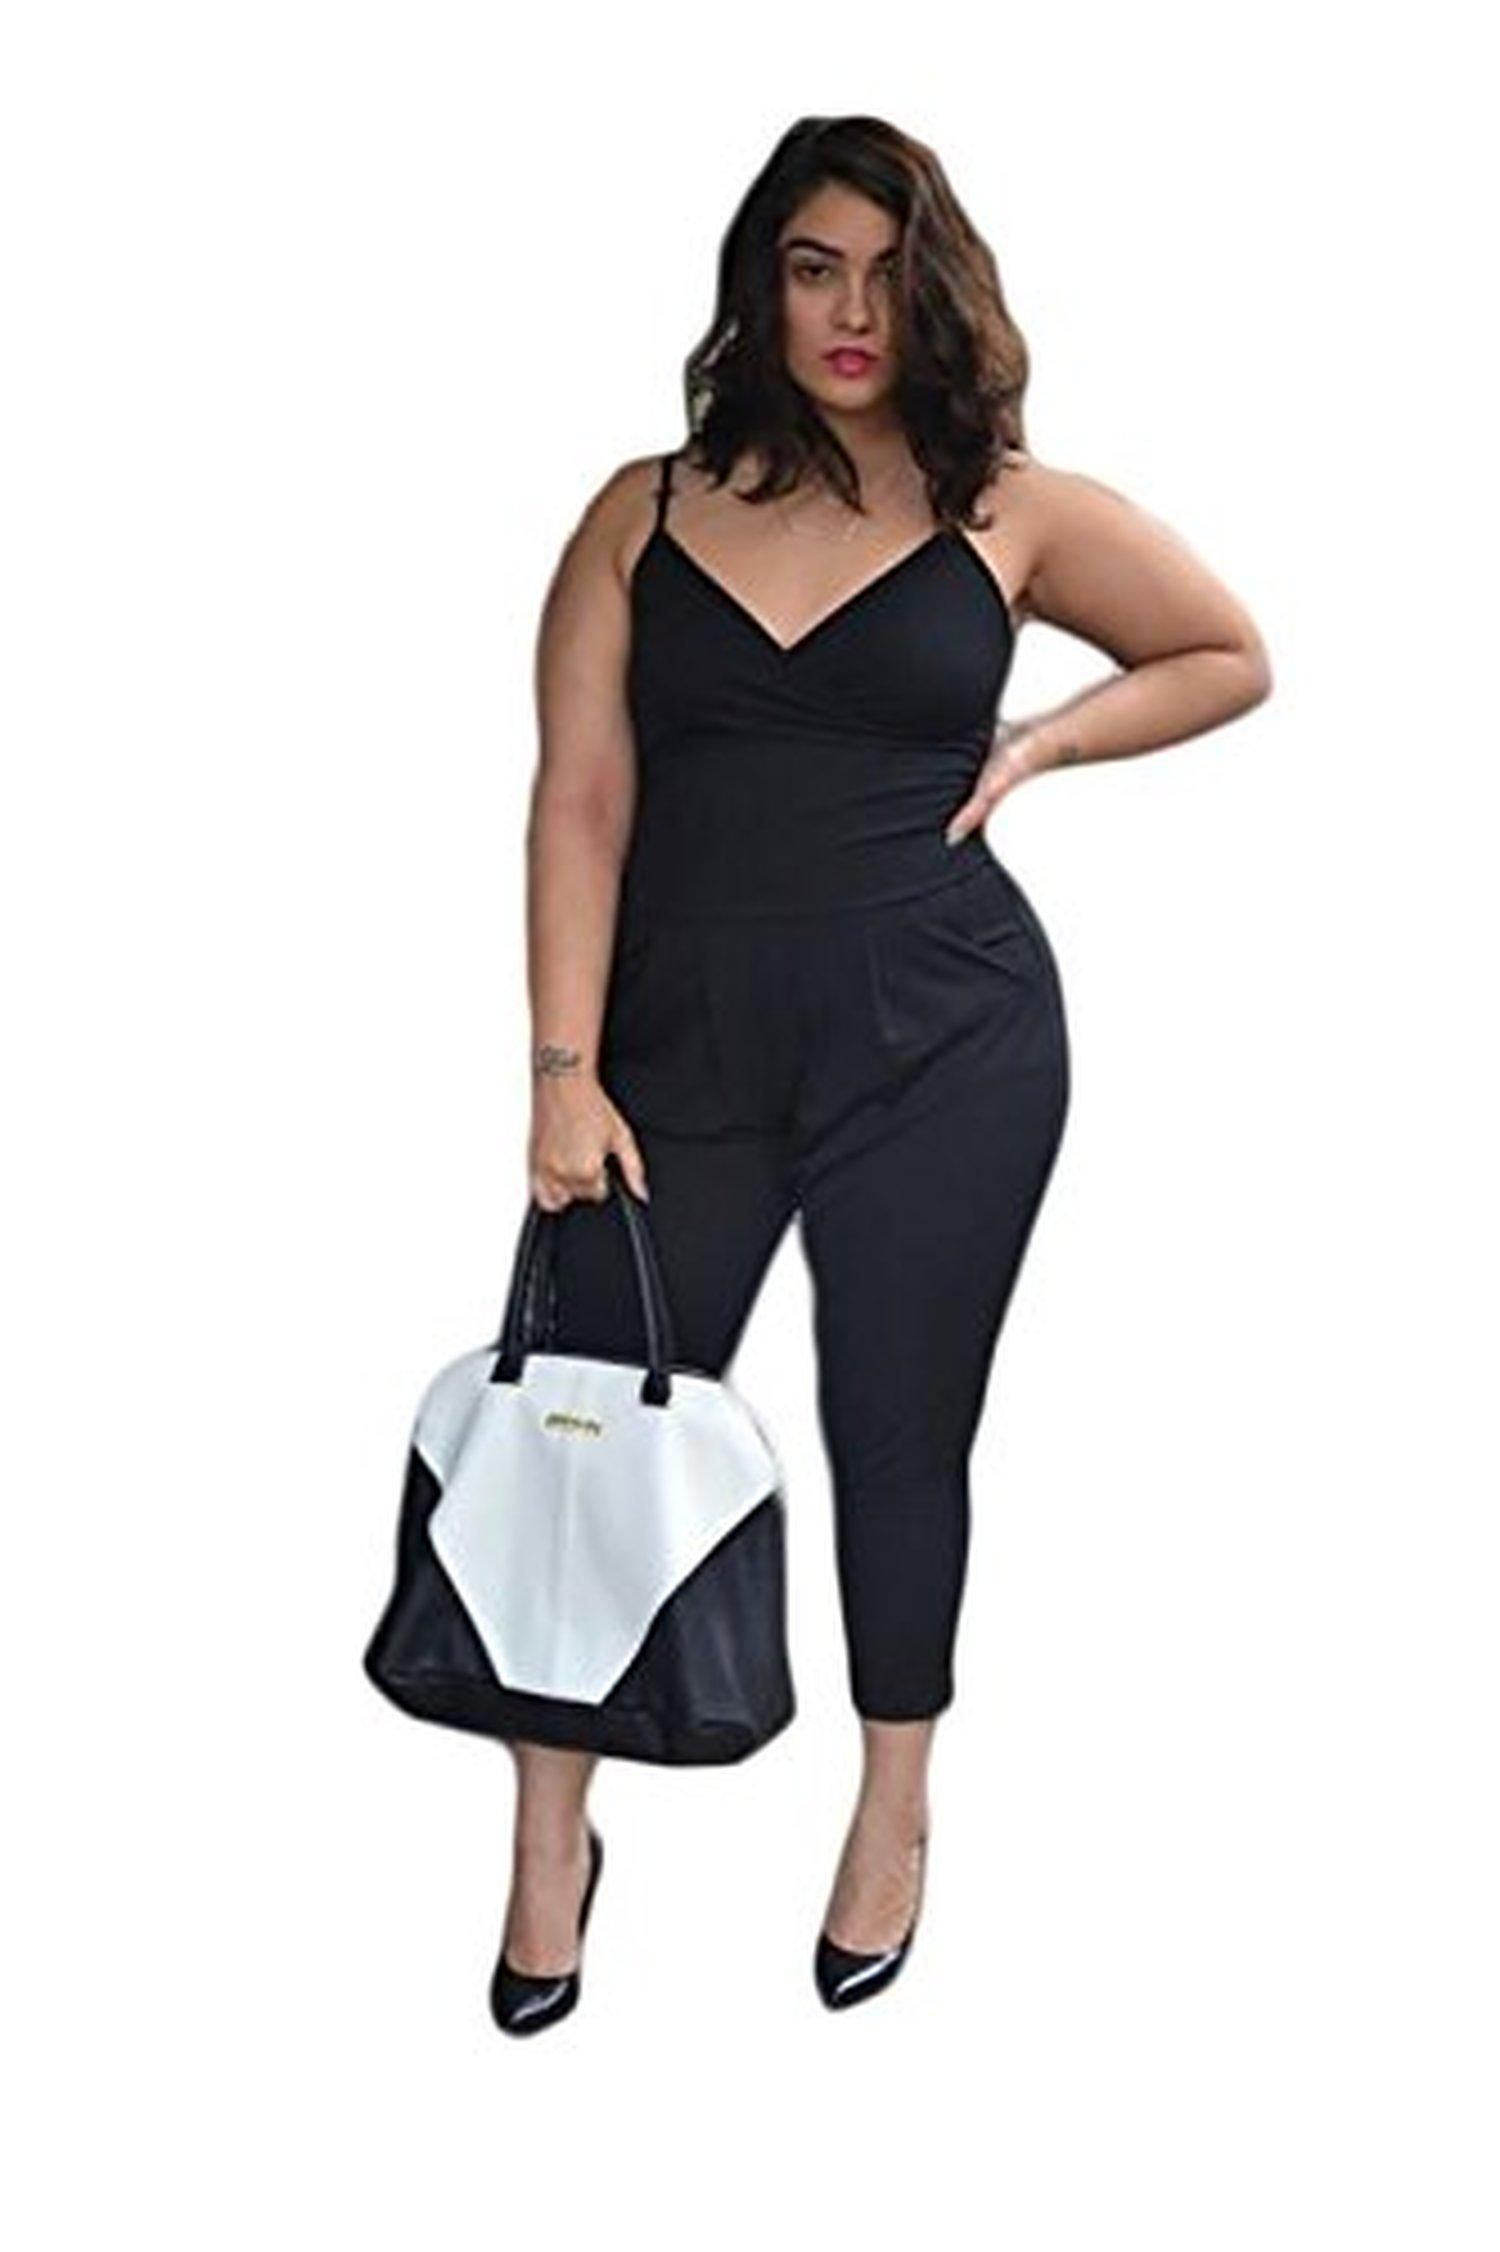 7dfc26dc5ee Flymall Womens Plus Size Clubwear Casual Romper Jumpsuit Pants Party Dress  (3XL) - Brought to you by Avarsha.com